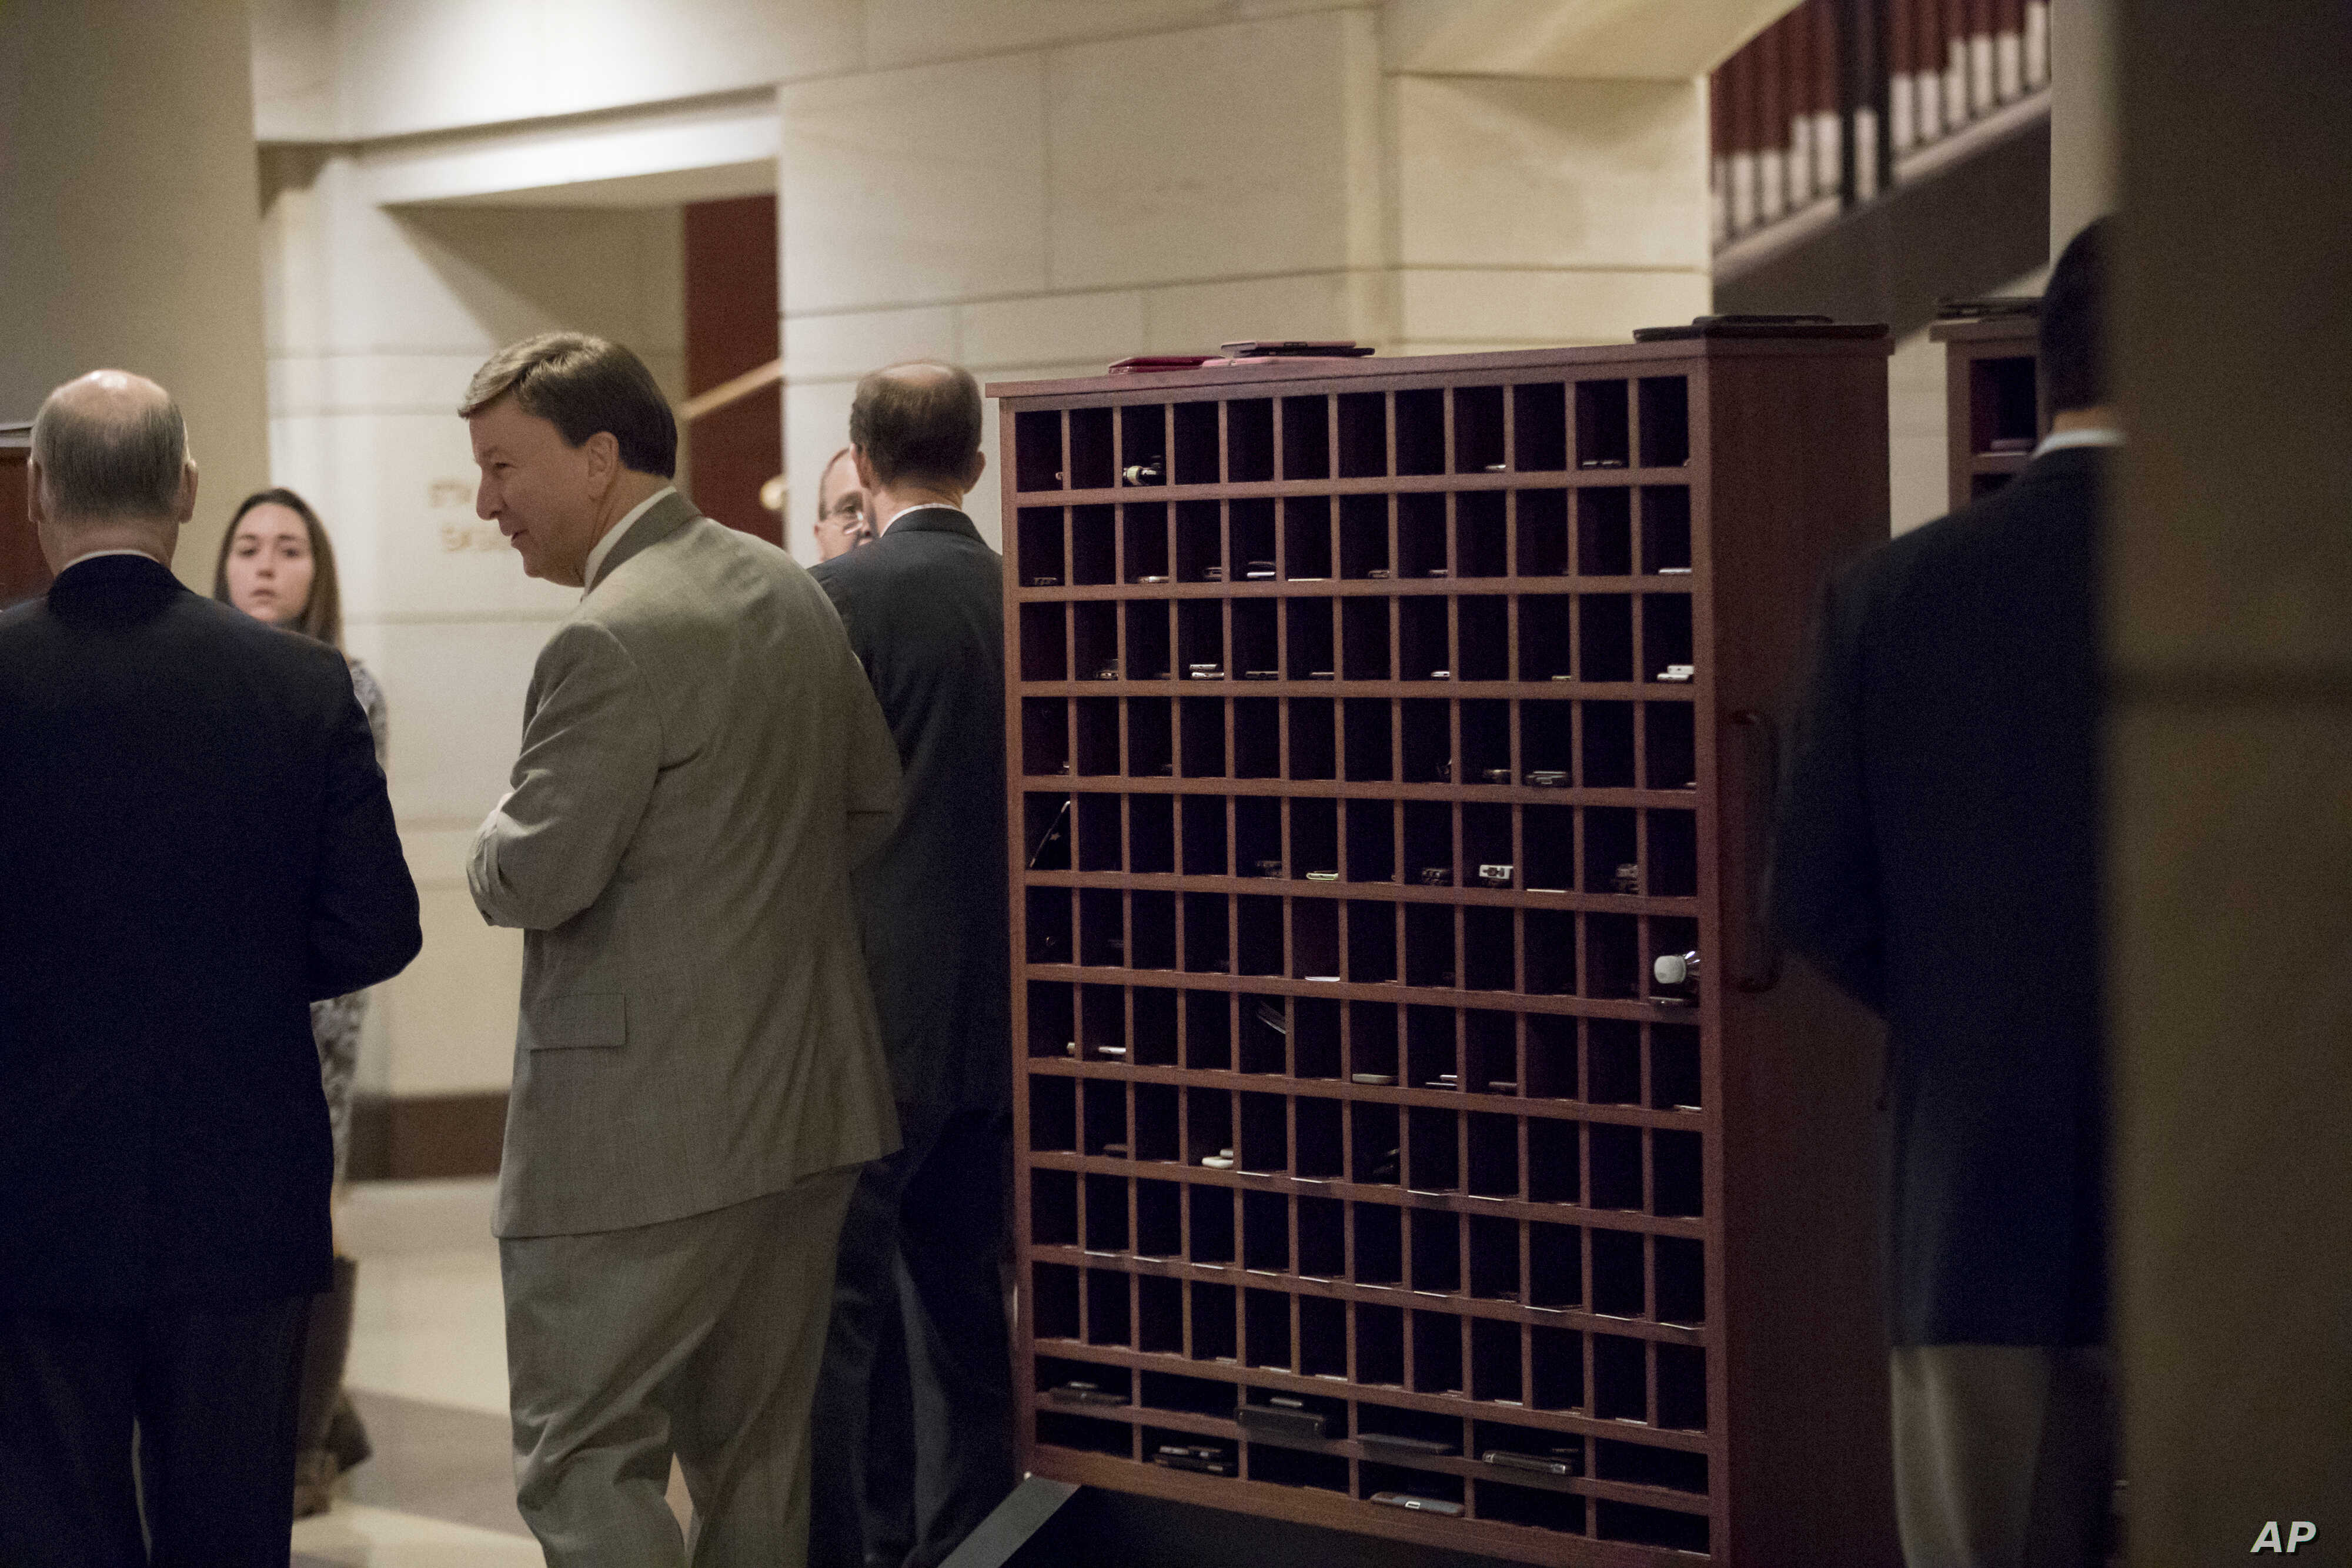 Members of Congress stow their cell phones and electronic devices before entering a closed-door intelligence briefing on Capitol Hill, Jan. 13, 2017.